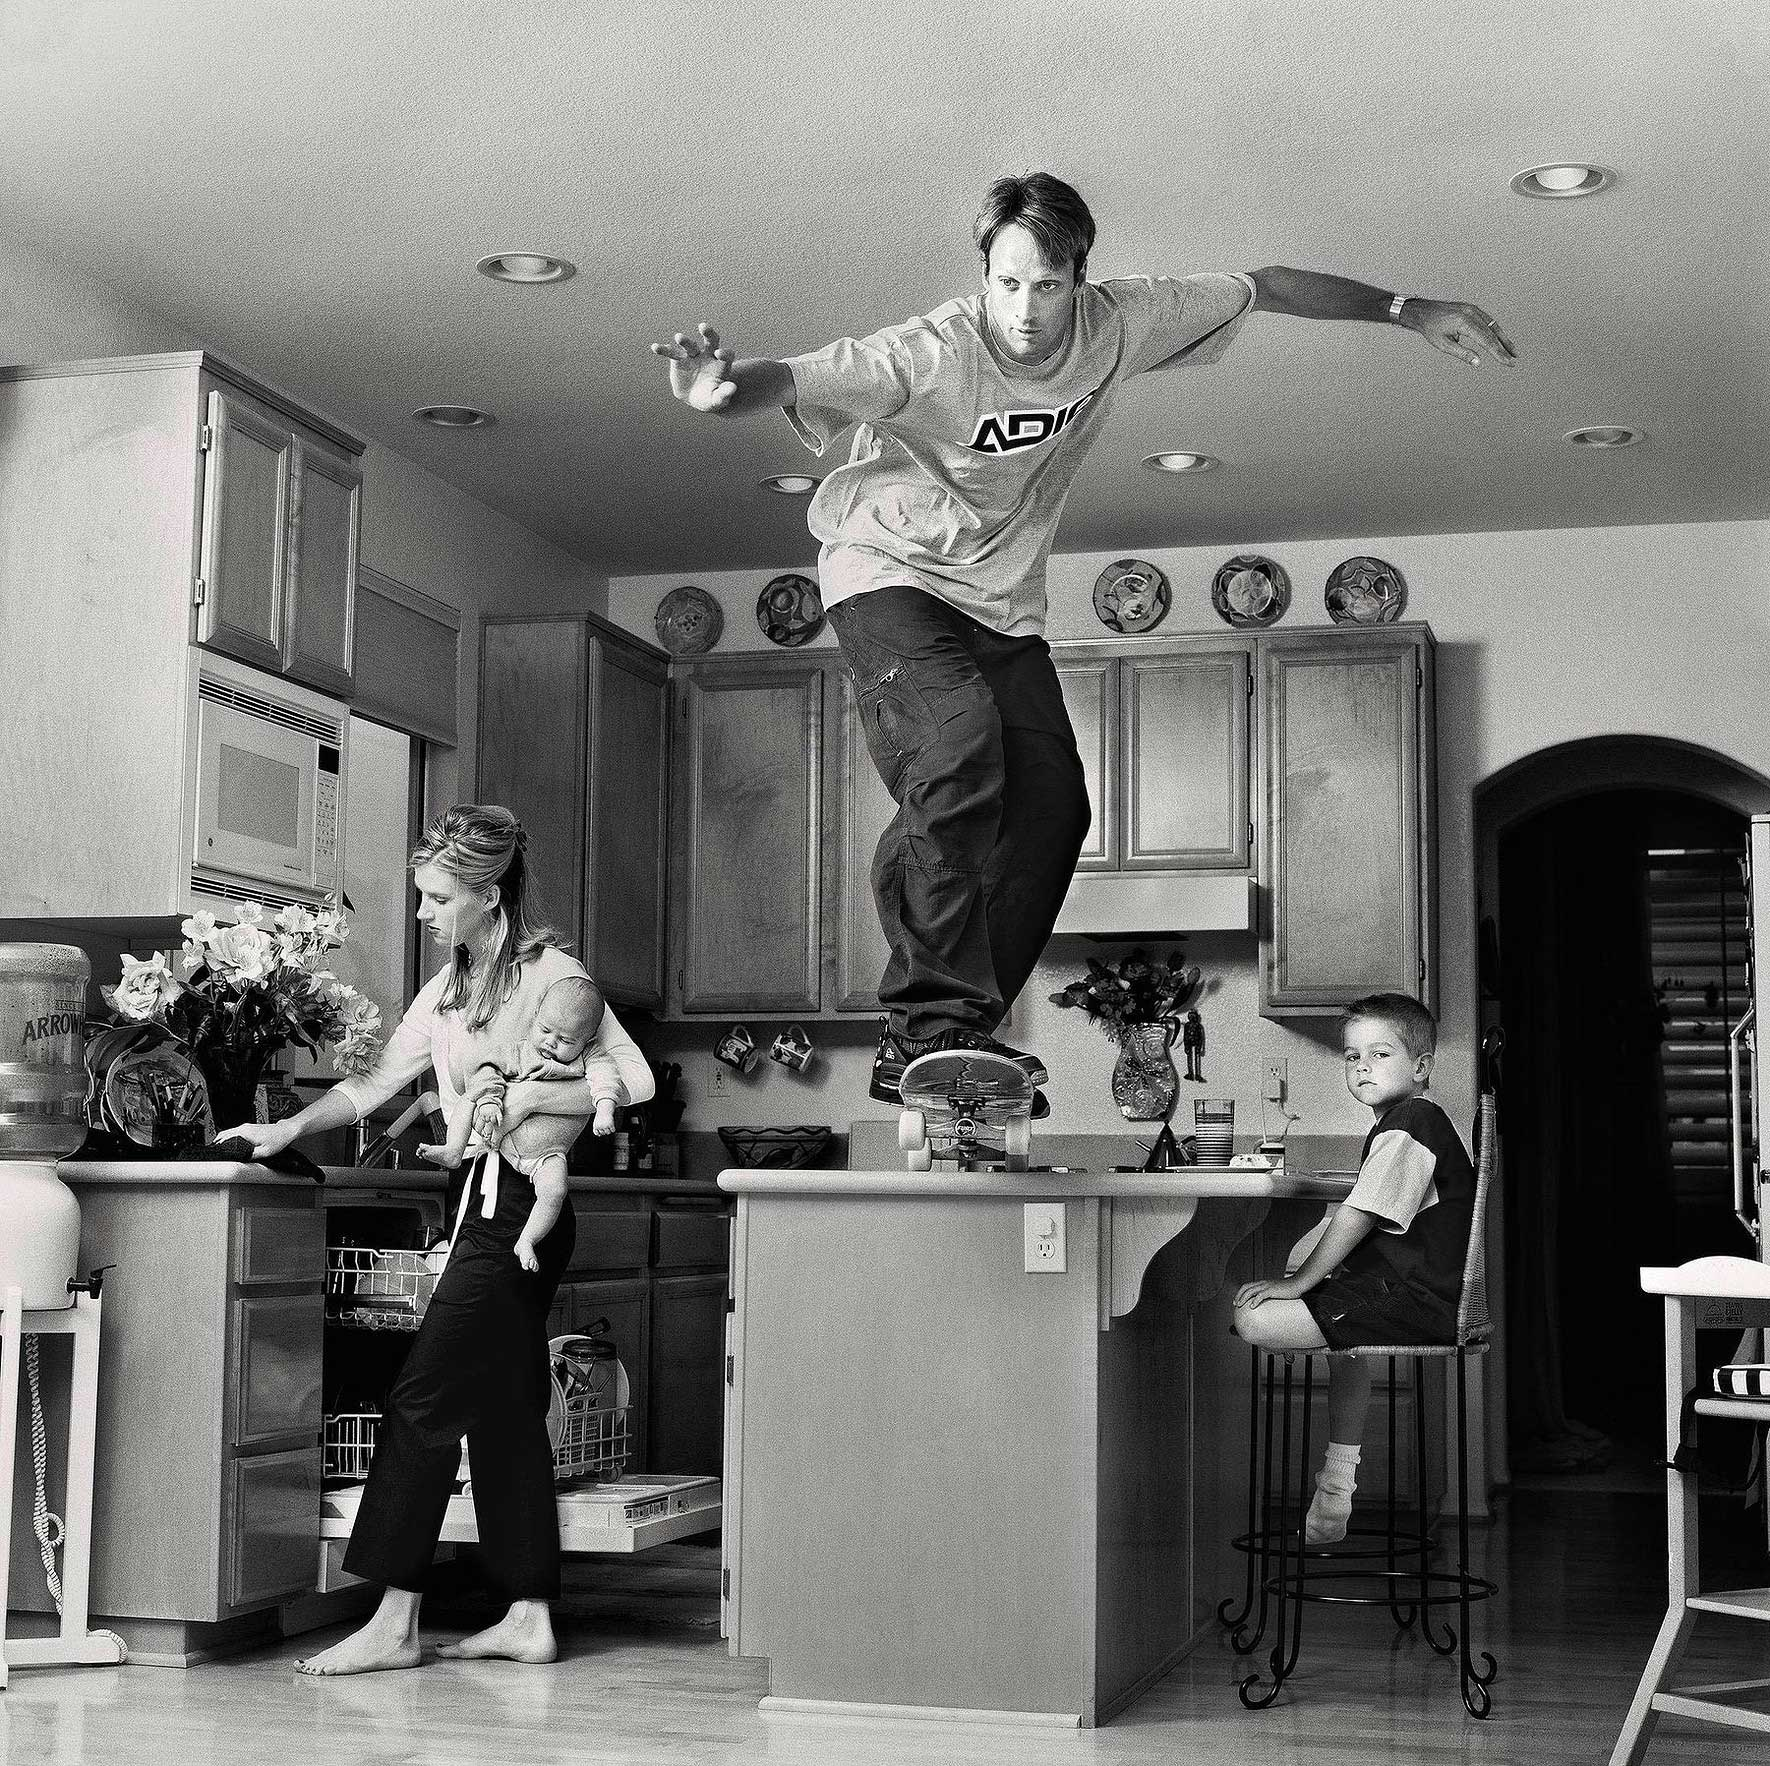 Here, Martin Schoeller talks TIME through a selection of high profile shoots from his new book  Portraits .                                                              Tony Hawk.                                                                It was a crazy day. I had another shoot the night before and I had to drive down at 3 or 4 in the morning. We showed up at his house before sunrise. I had thought skaters are always trying to break rules — jumping off cars. Skateboarding has that bad boy connotation. So I thought he's more of a family man he's a bit older, but still maybe to take a picture that still shows skateboarding culture in a family setting. And when I came to the house and saw this great kitchen counter, I had this spontaneous idea of him jumping off it.                                                              He said 'no!' It was 6.30 in the morning and he didn't feel like jumping off the counter. But I started talking to his wife. And I said 'you would be in the picture too.' And she basically talked him into it. This one picture was the reason I was offered a contract with the New Yorker.